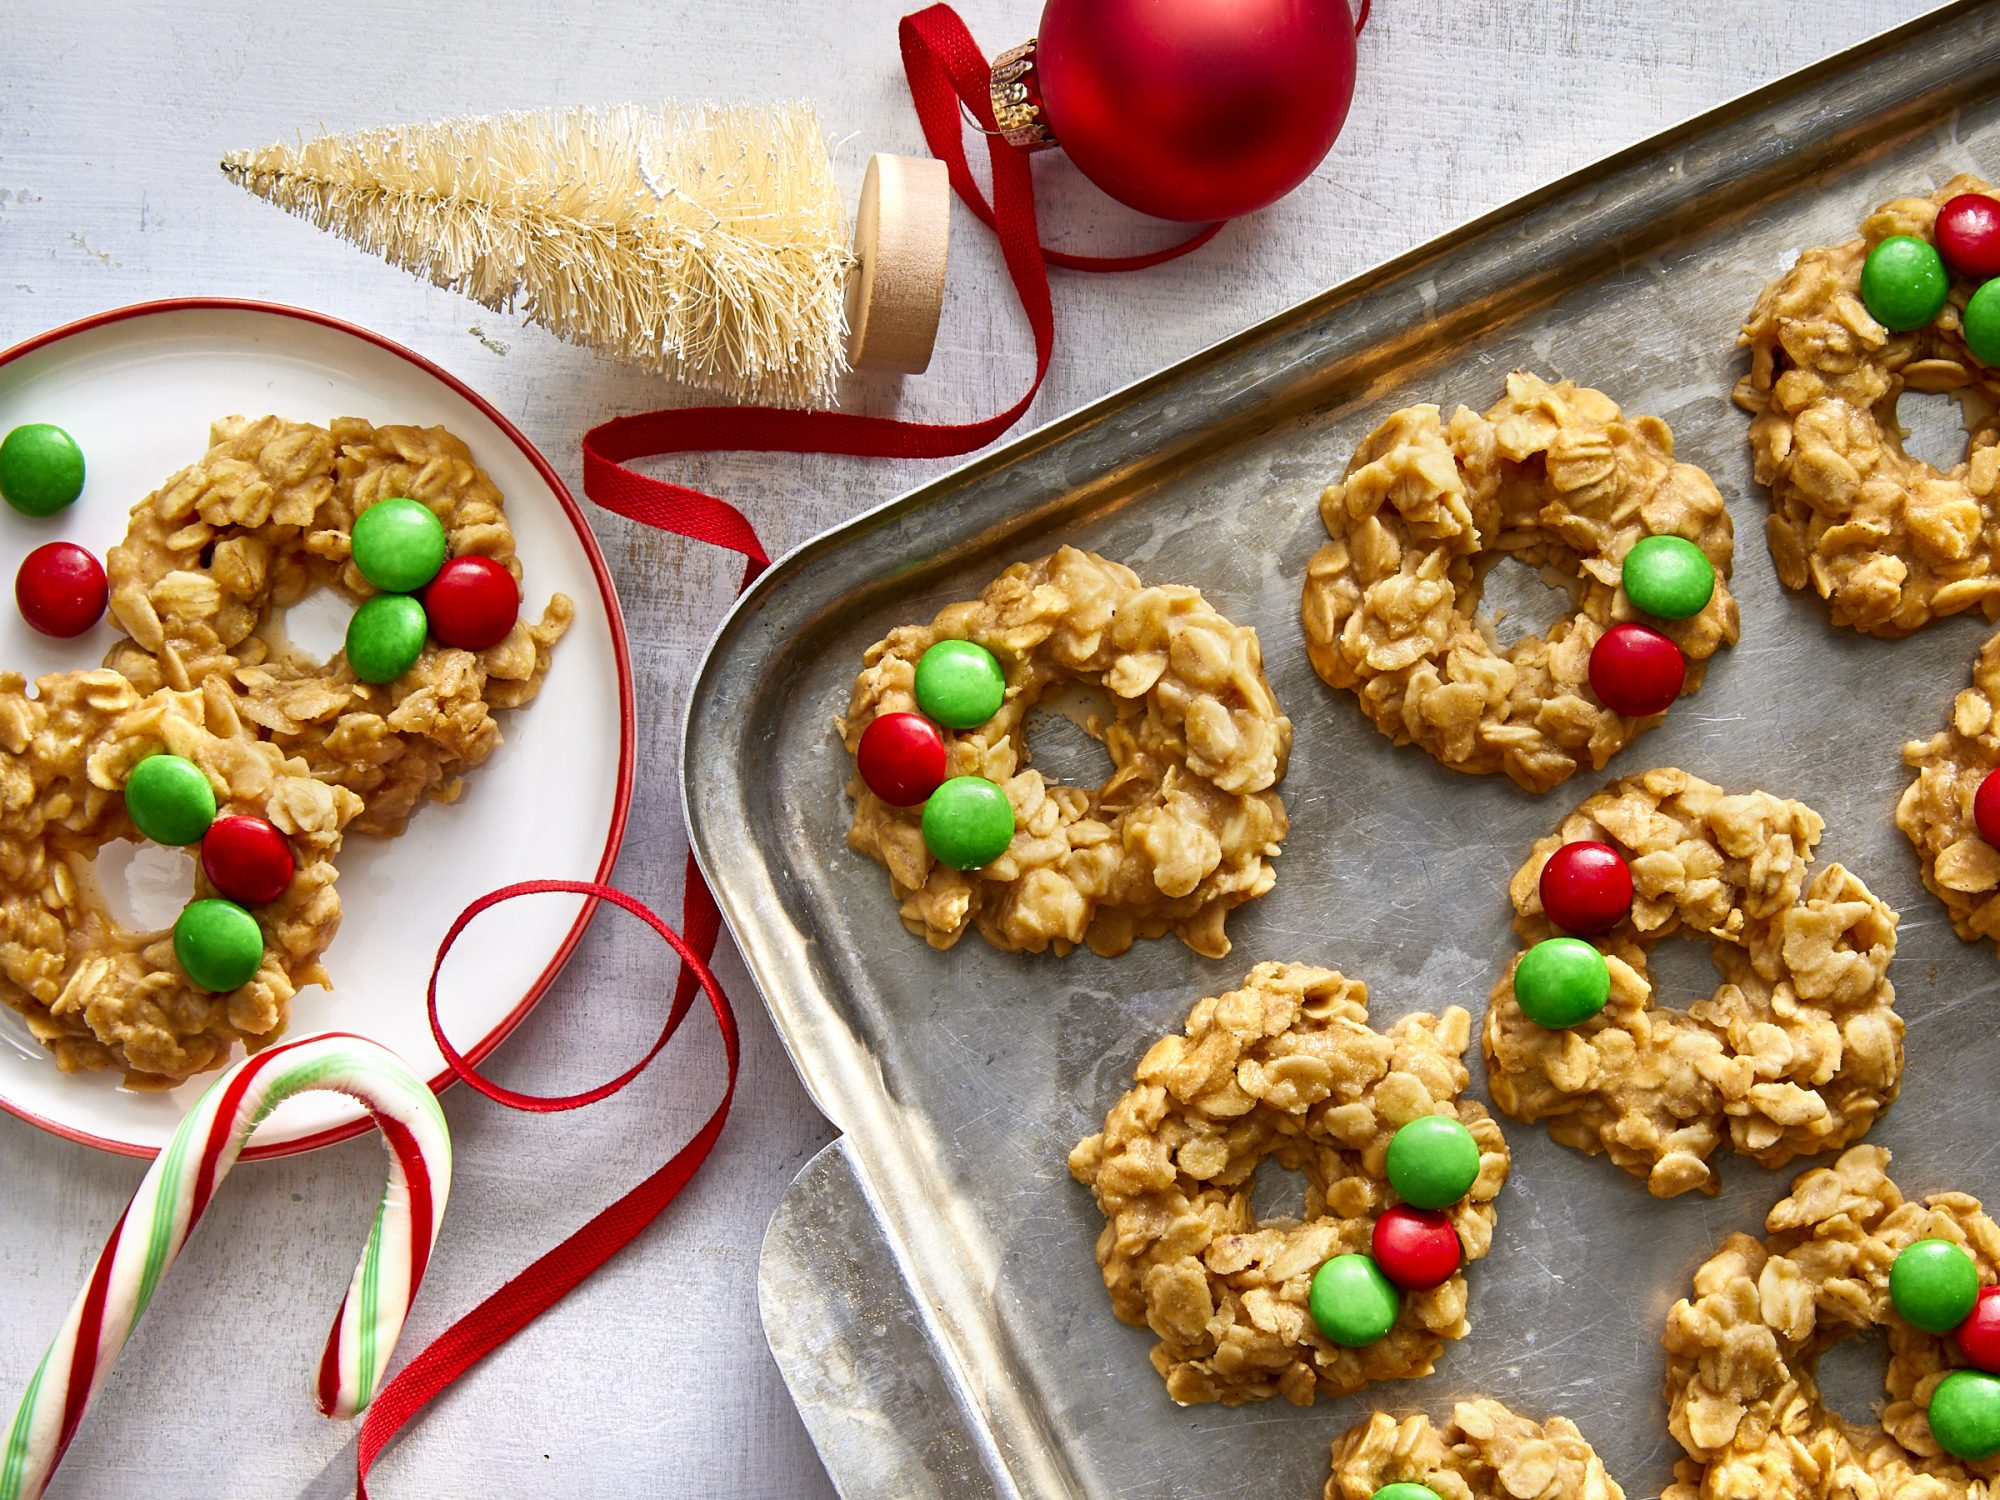 7 Clever Ideas for Packaging Cookies as Holiday Gifts